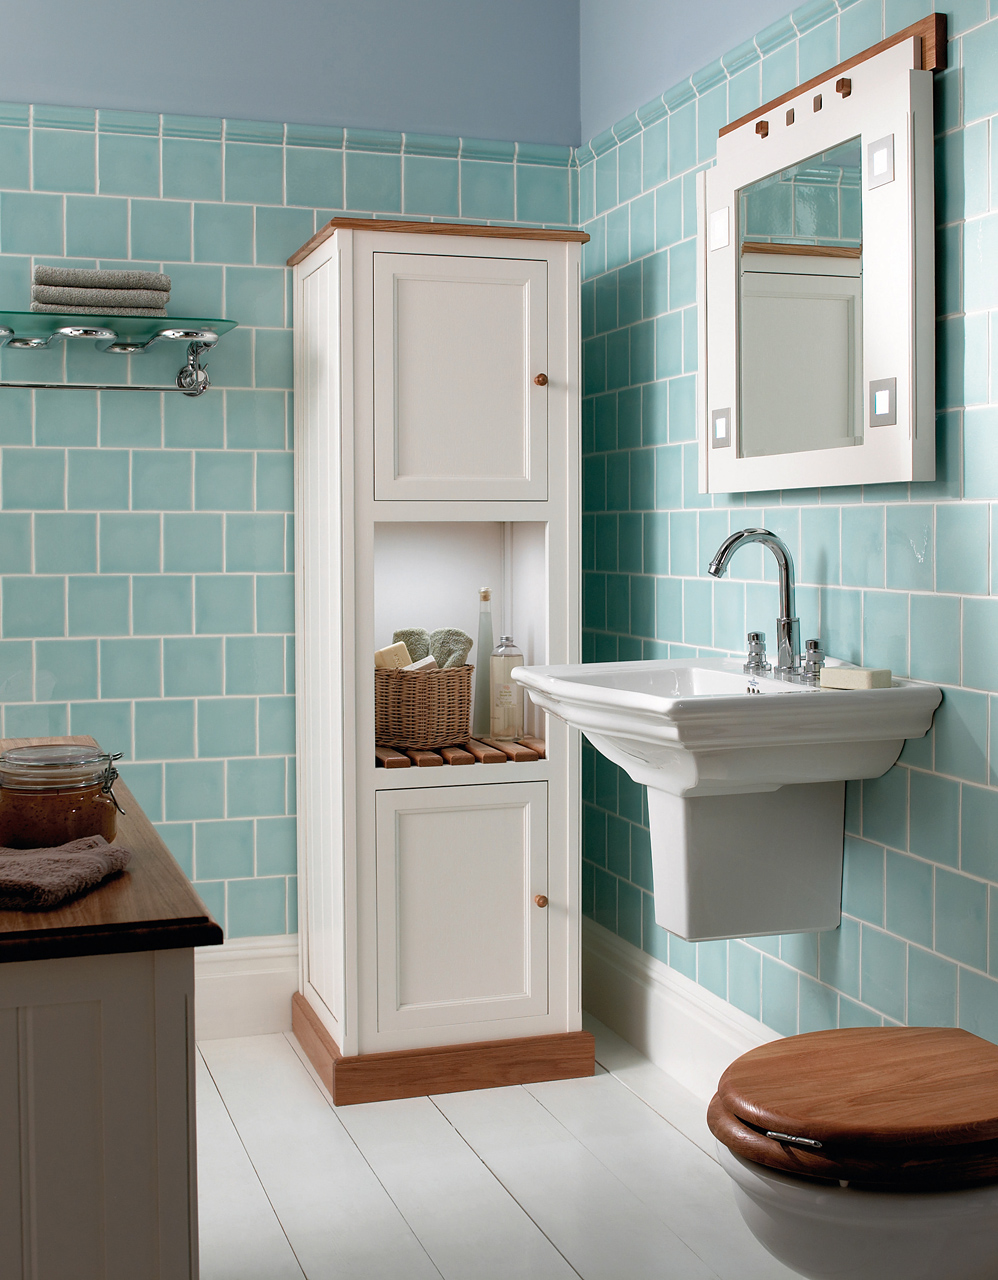 Classic Bathrooms: Imperial Bathrooms - Driftwood-cloakroom